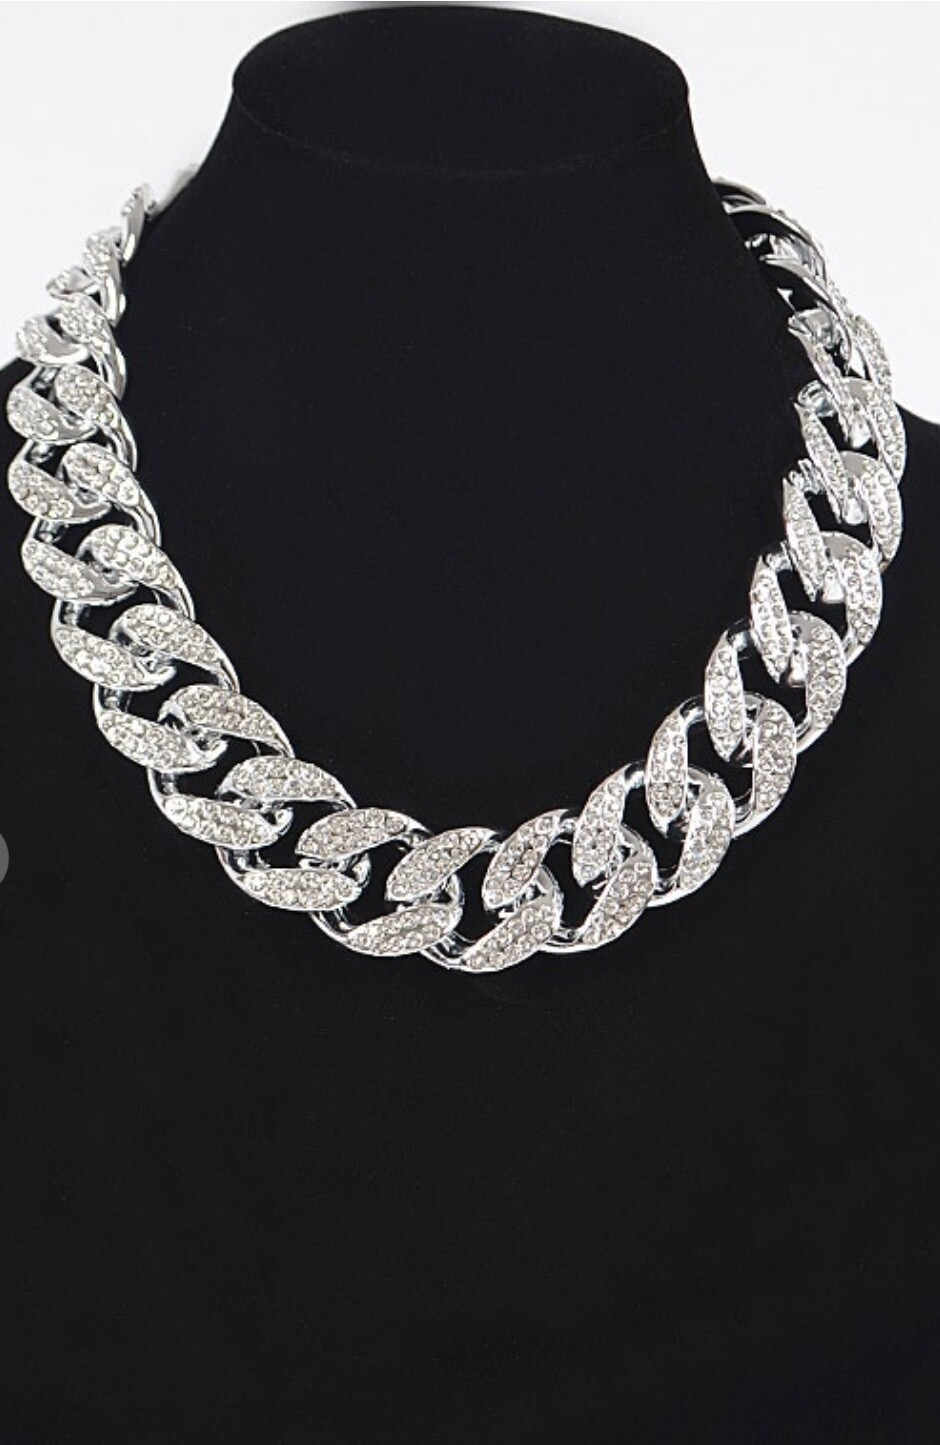 Stone Oversized Link Chain